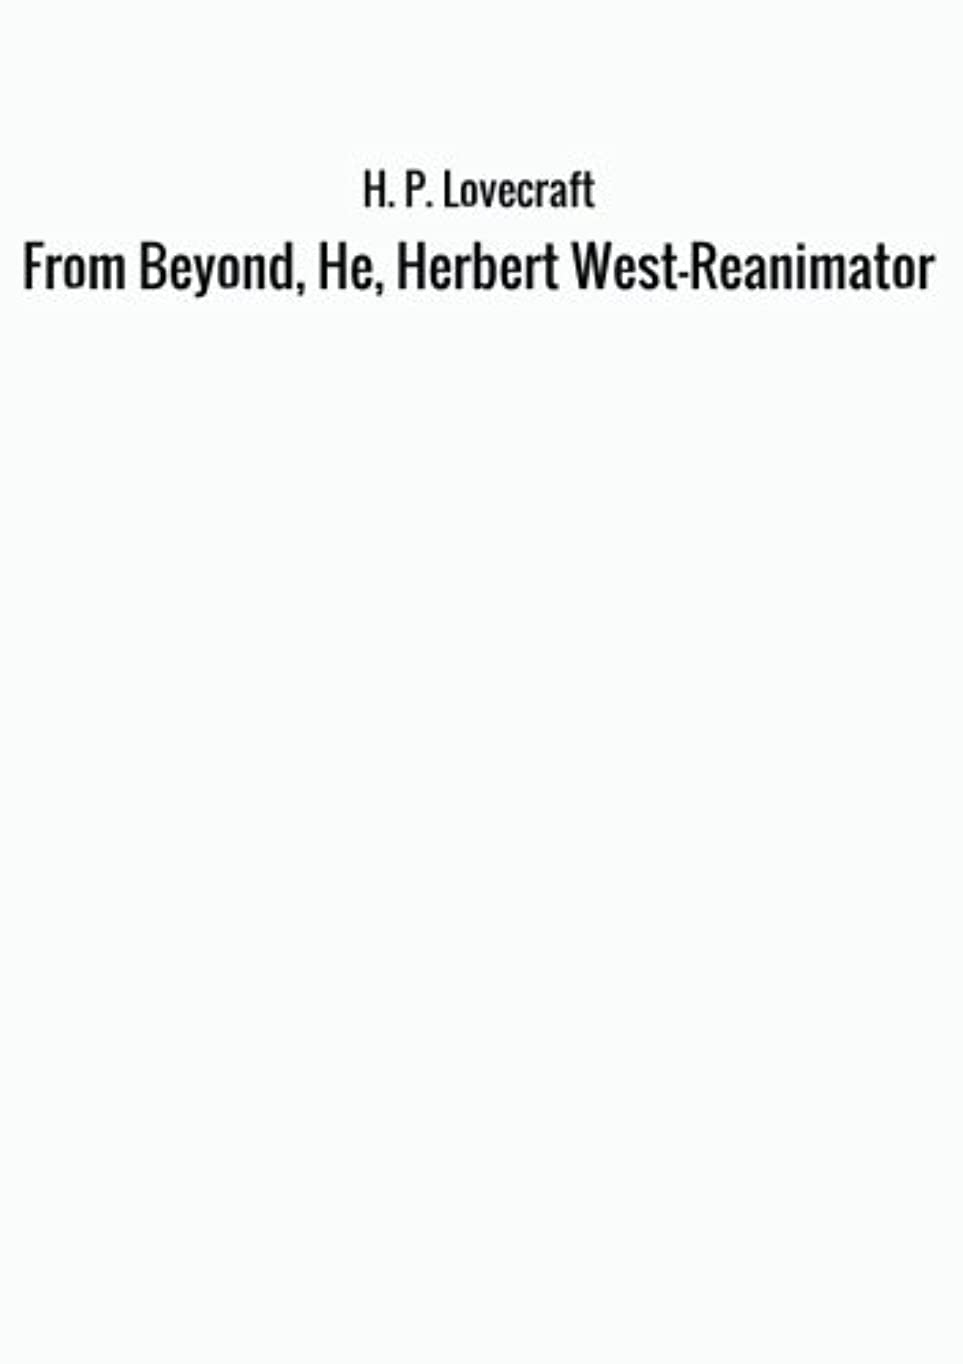 遵守する白菜準拠From Beyond, He, Herbert West—Reanimator